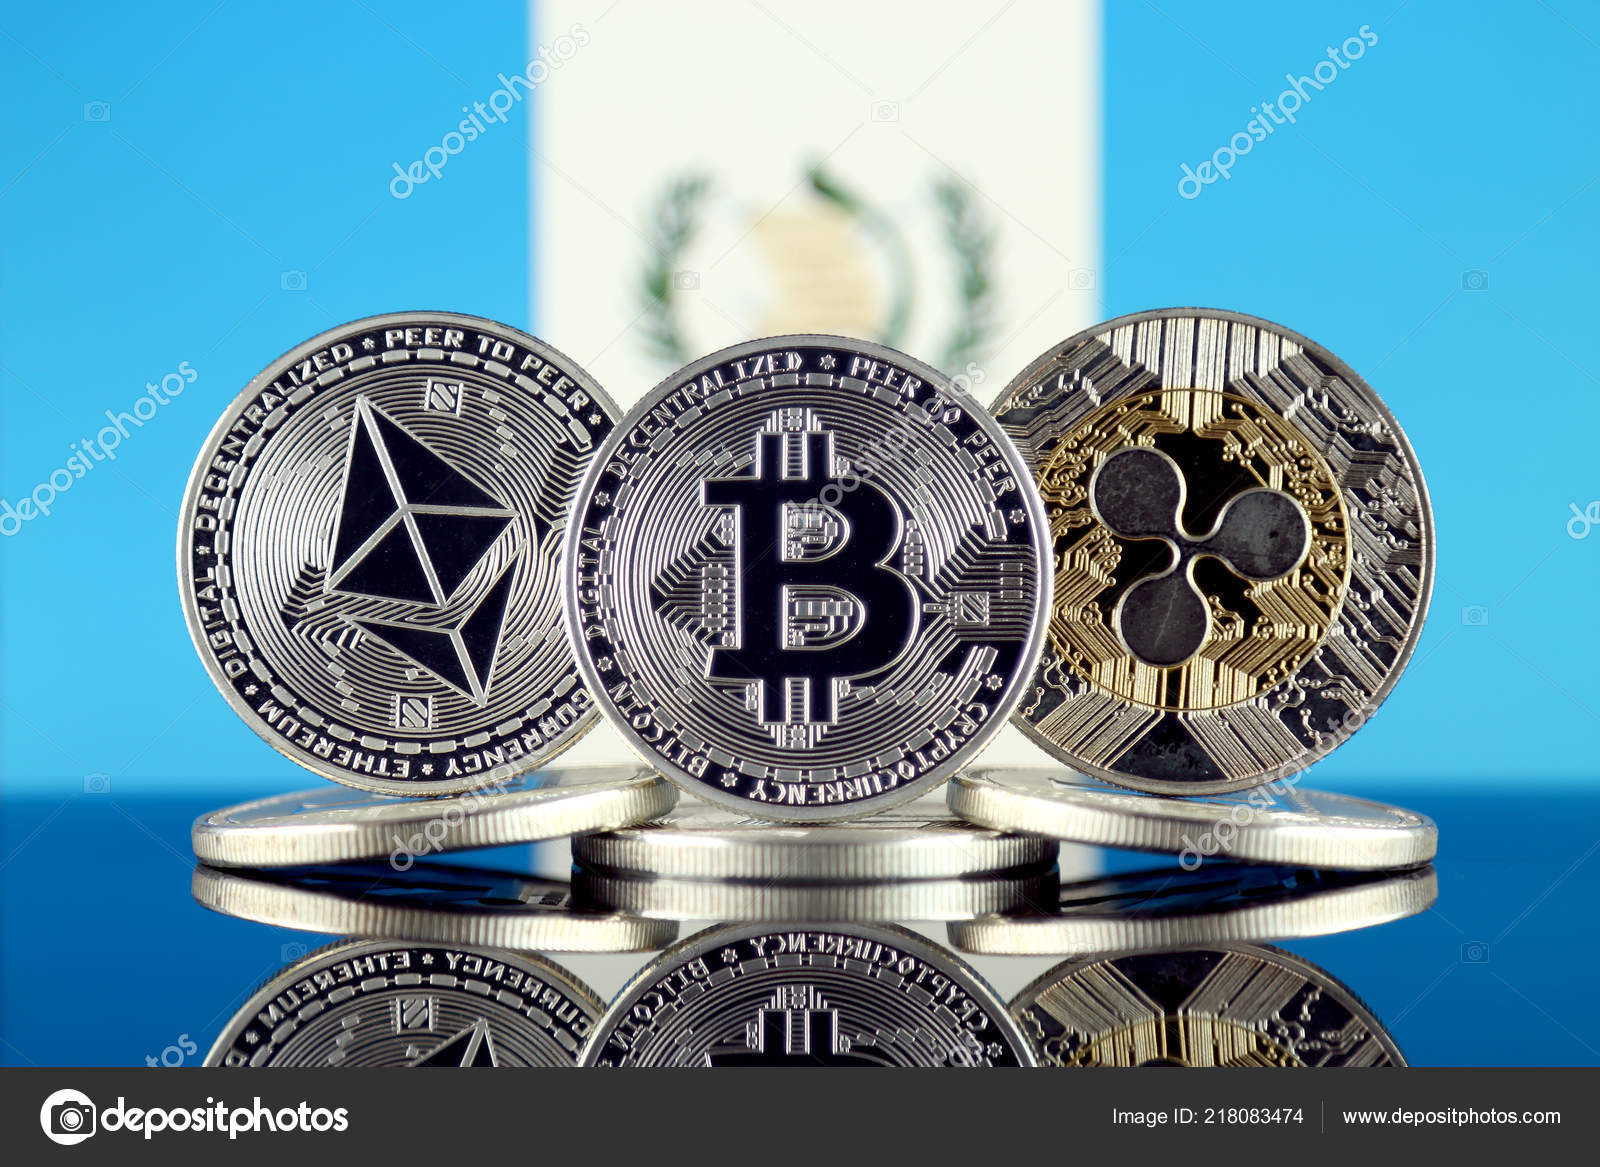 top 3 cryptocurrency by market cap